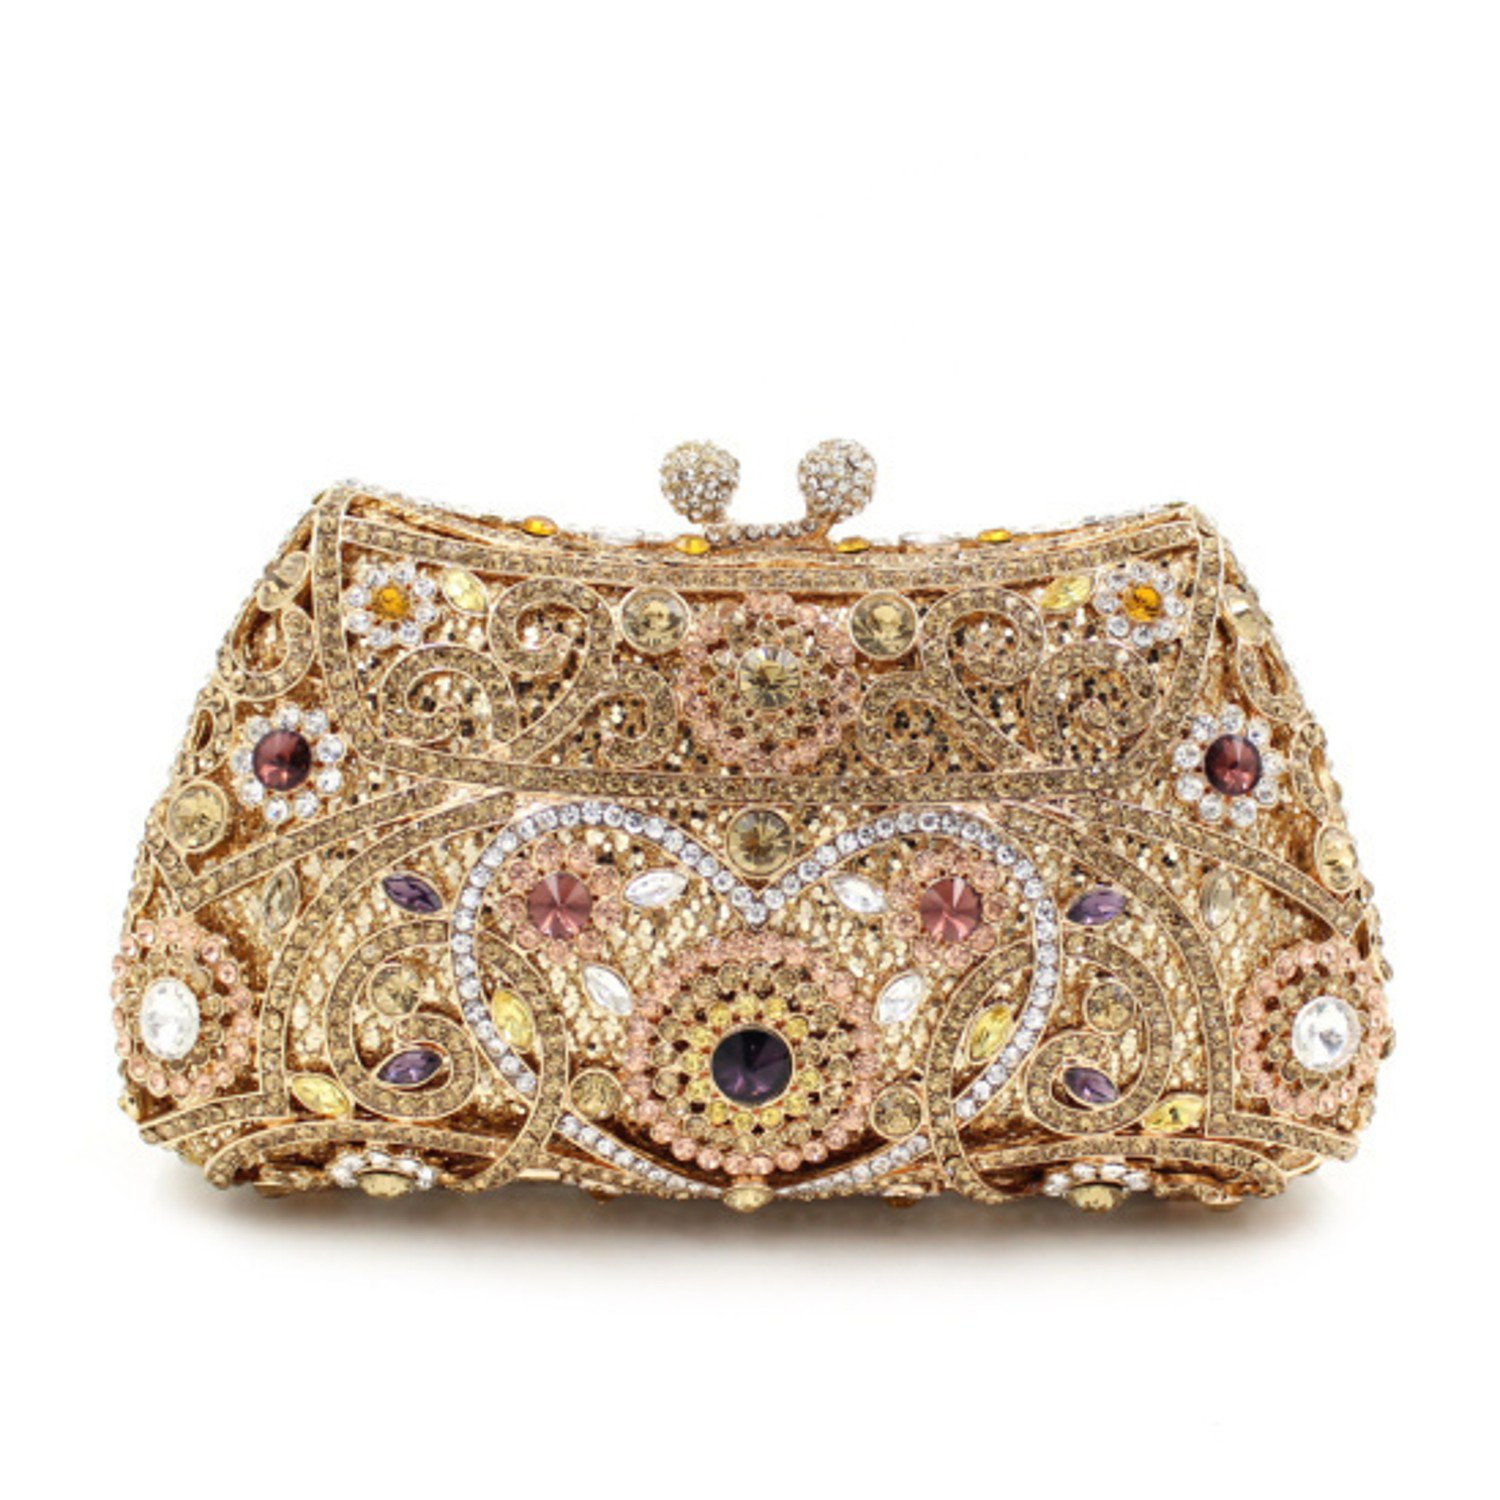 Women's Gold Plating Evening Clutch in Metal with Crystal